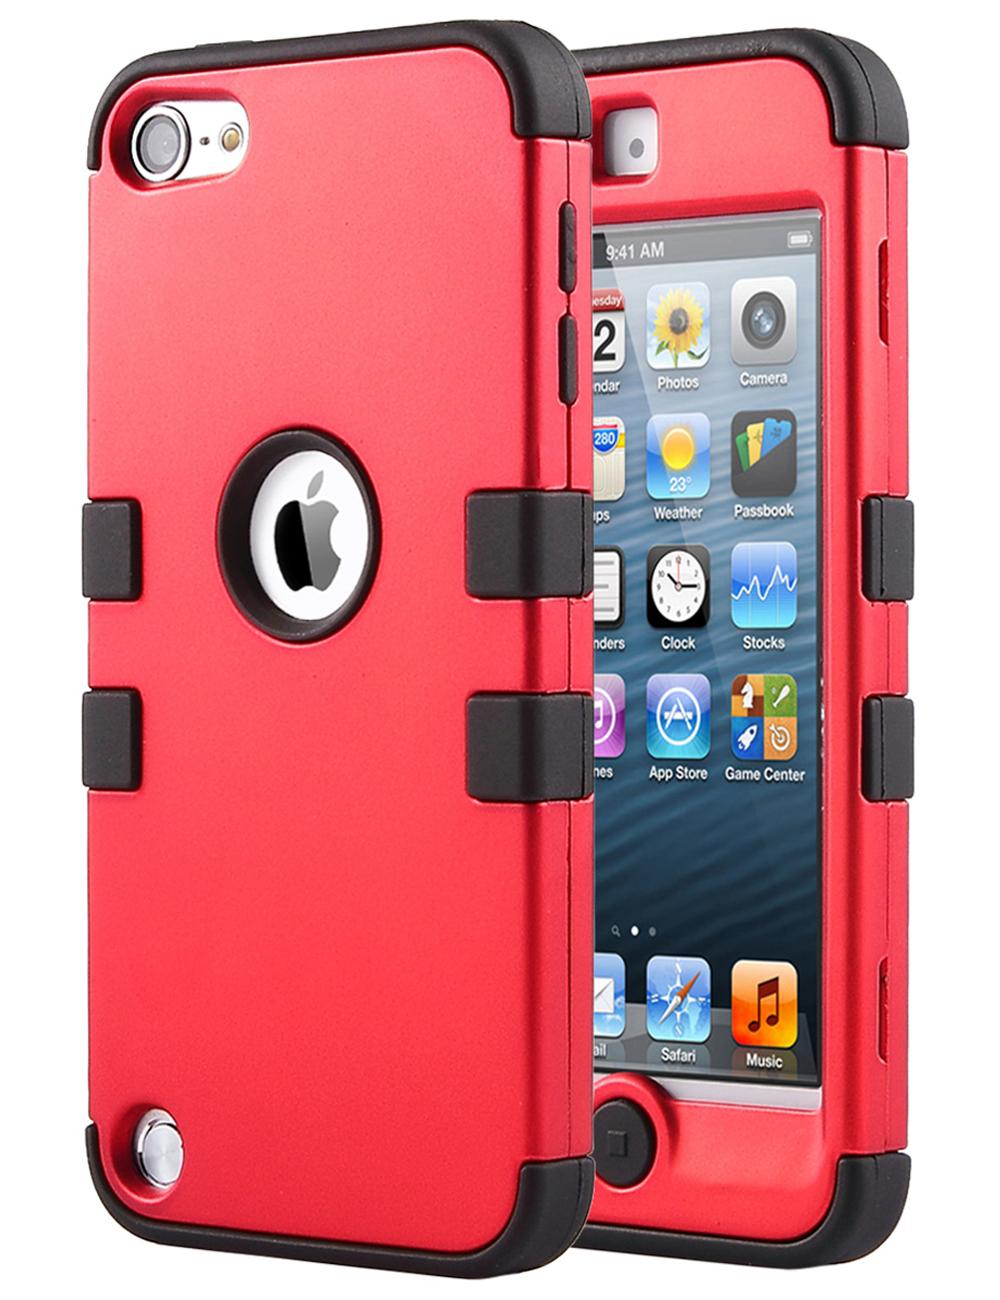 separation shoes 823ed 6da32 iPod Touch 7 Case, iPod Touch 6th Generation Case,ULAK Hybrid Dual Layer  Hybrid Shockproof Cover Case Silicon Hard Cover for iPod Touch 5 5th Gen /  6 ...